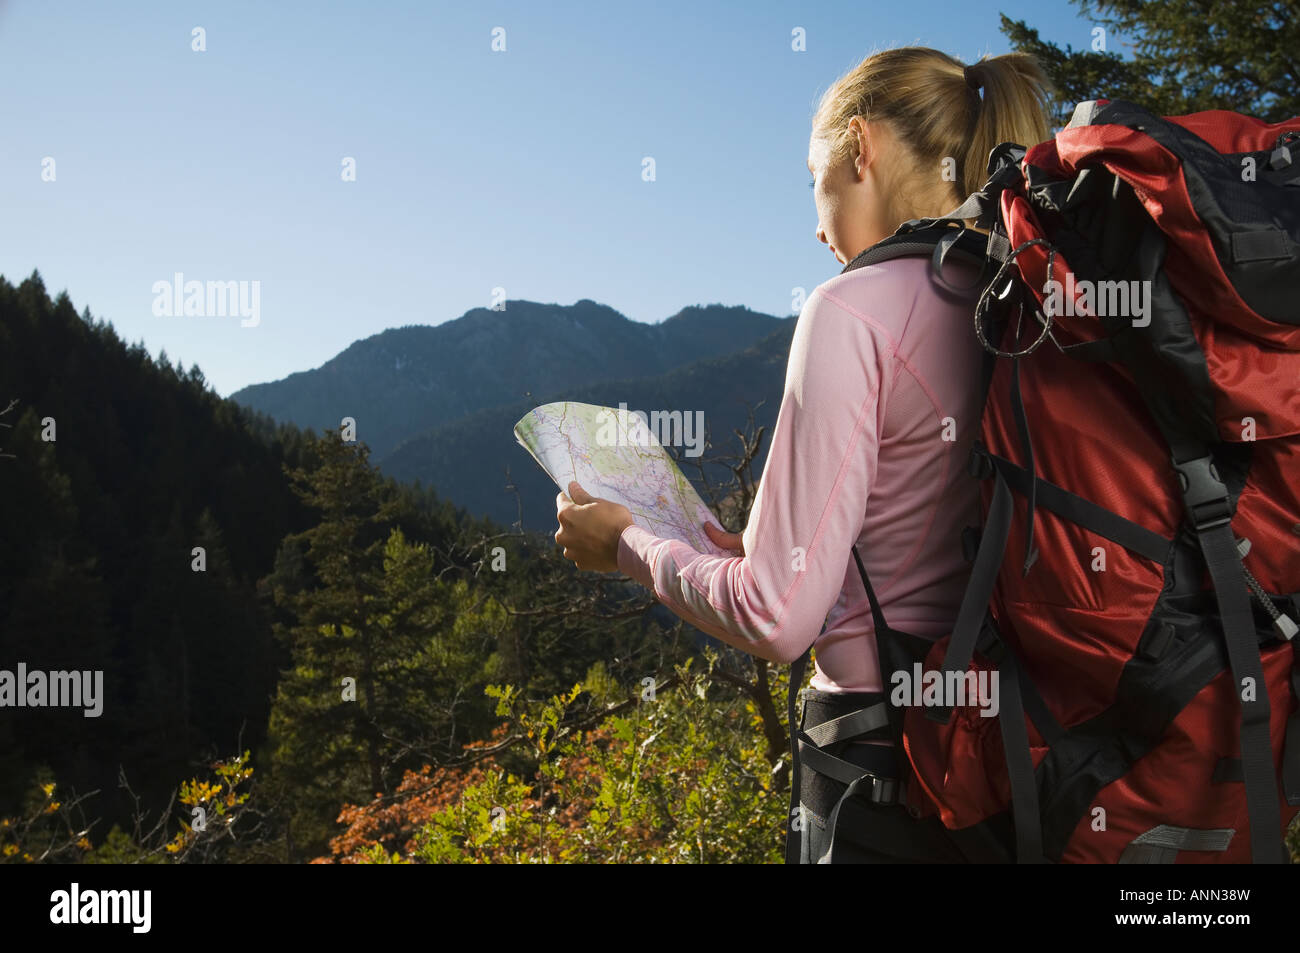 Female hiker looking at map, Utah, United States - Stock Image